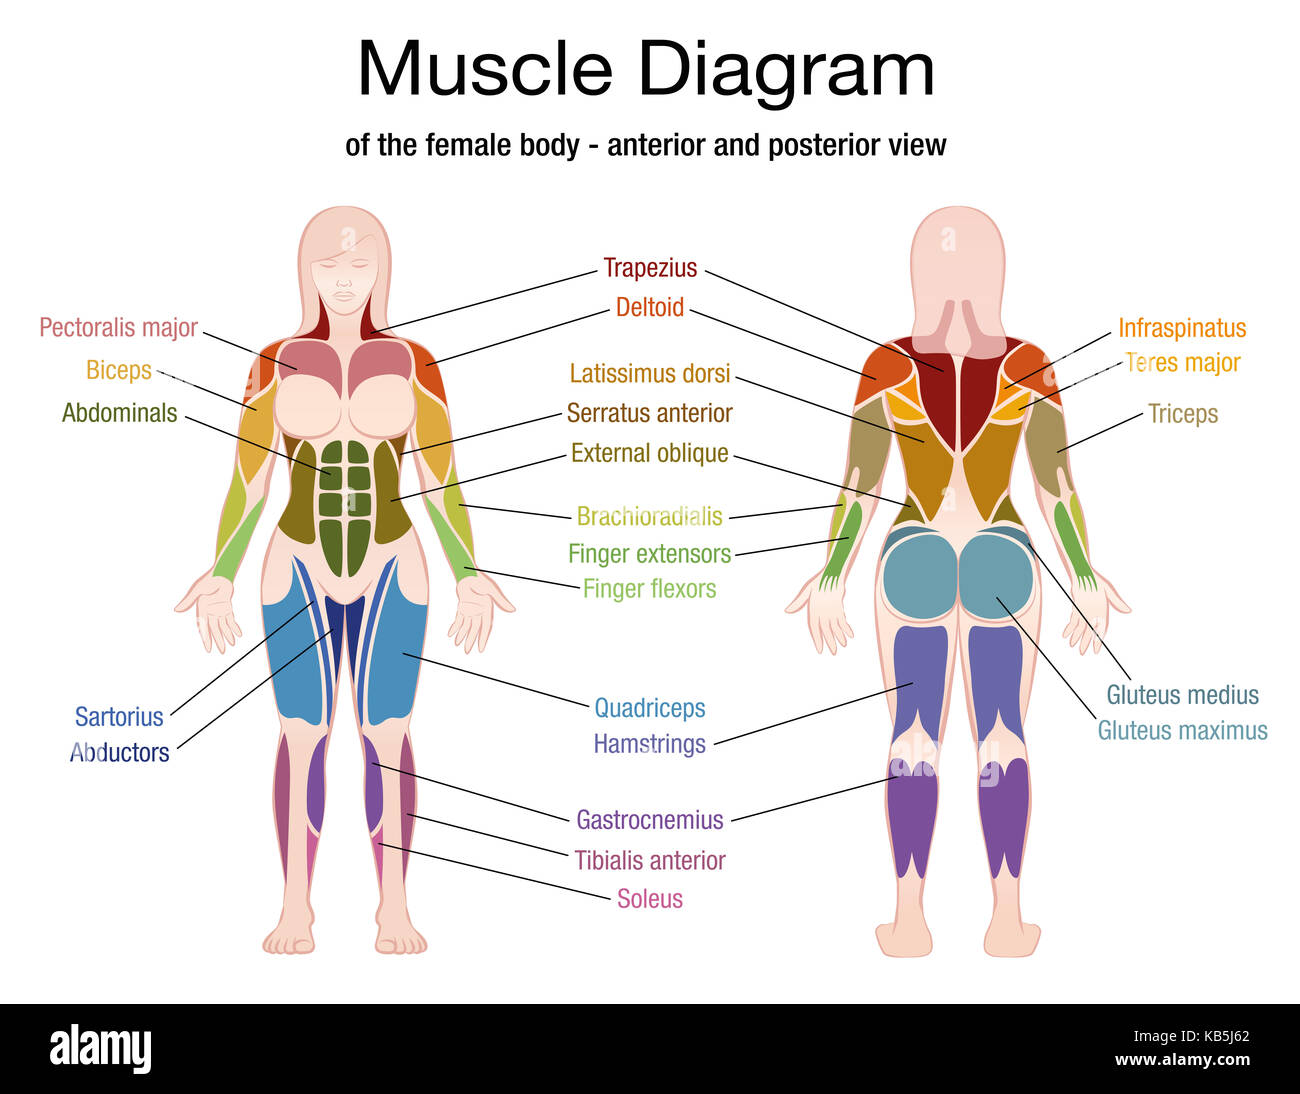 Human Body Muscles Diagram Stock Photos & Human Body